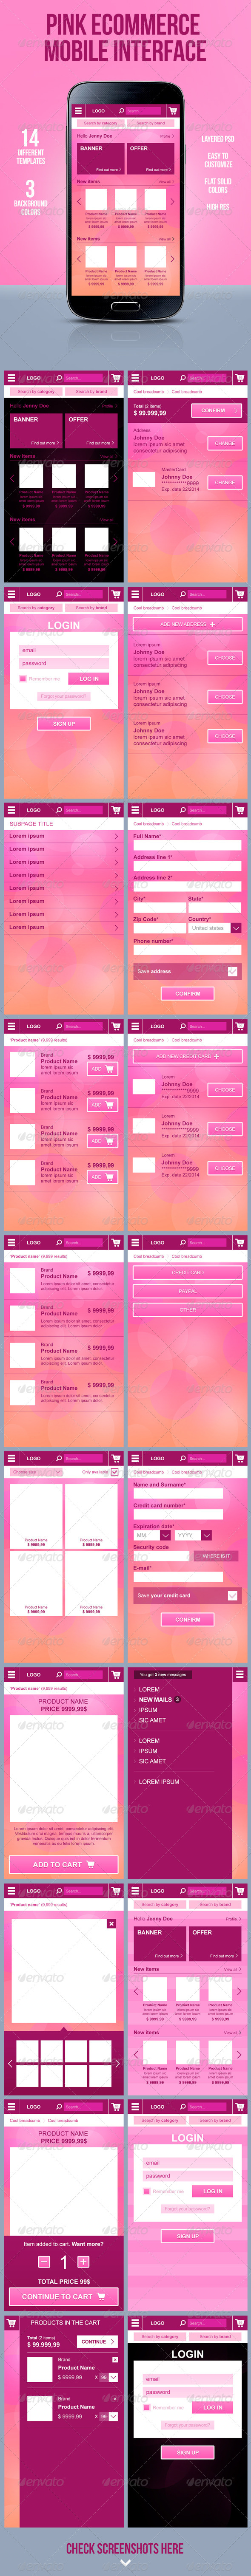 GraphicRiver Pink E-Commerce Mobile Interface 5944139